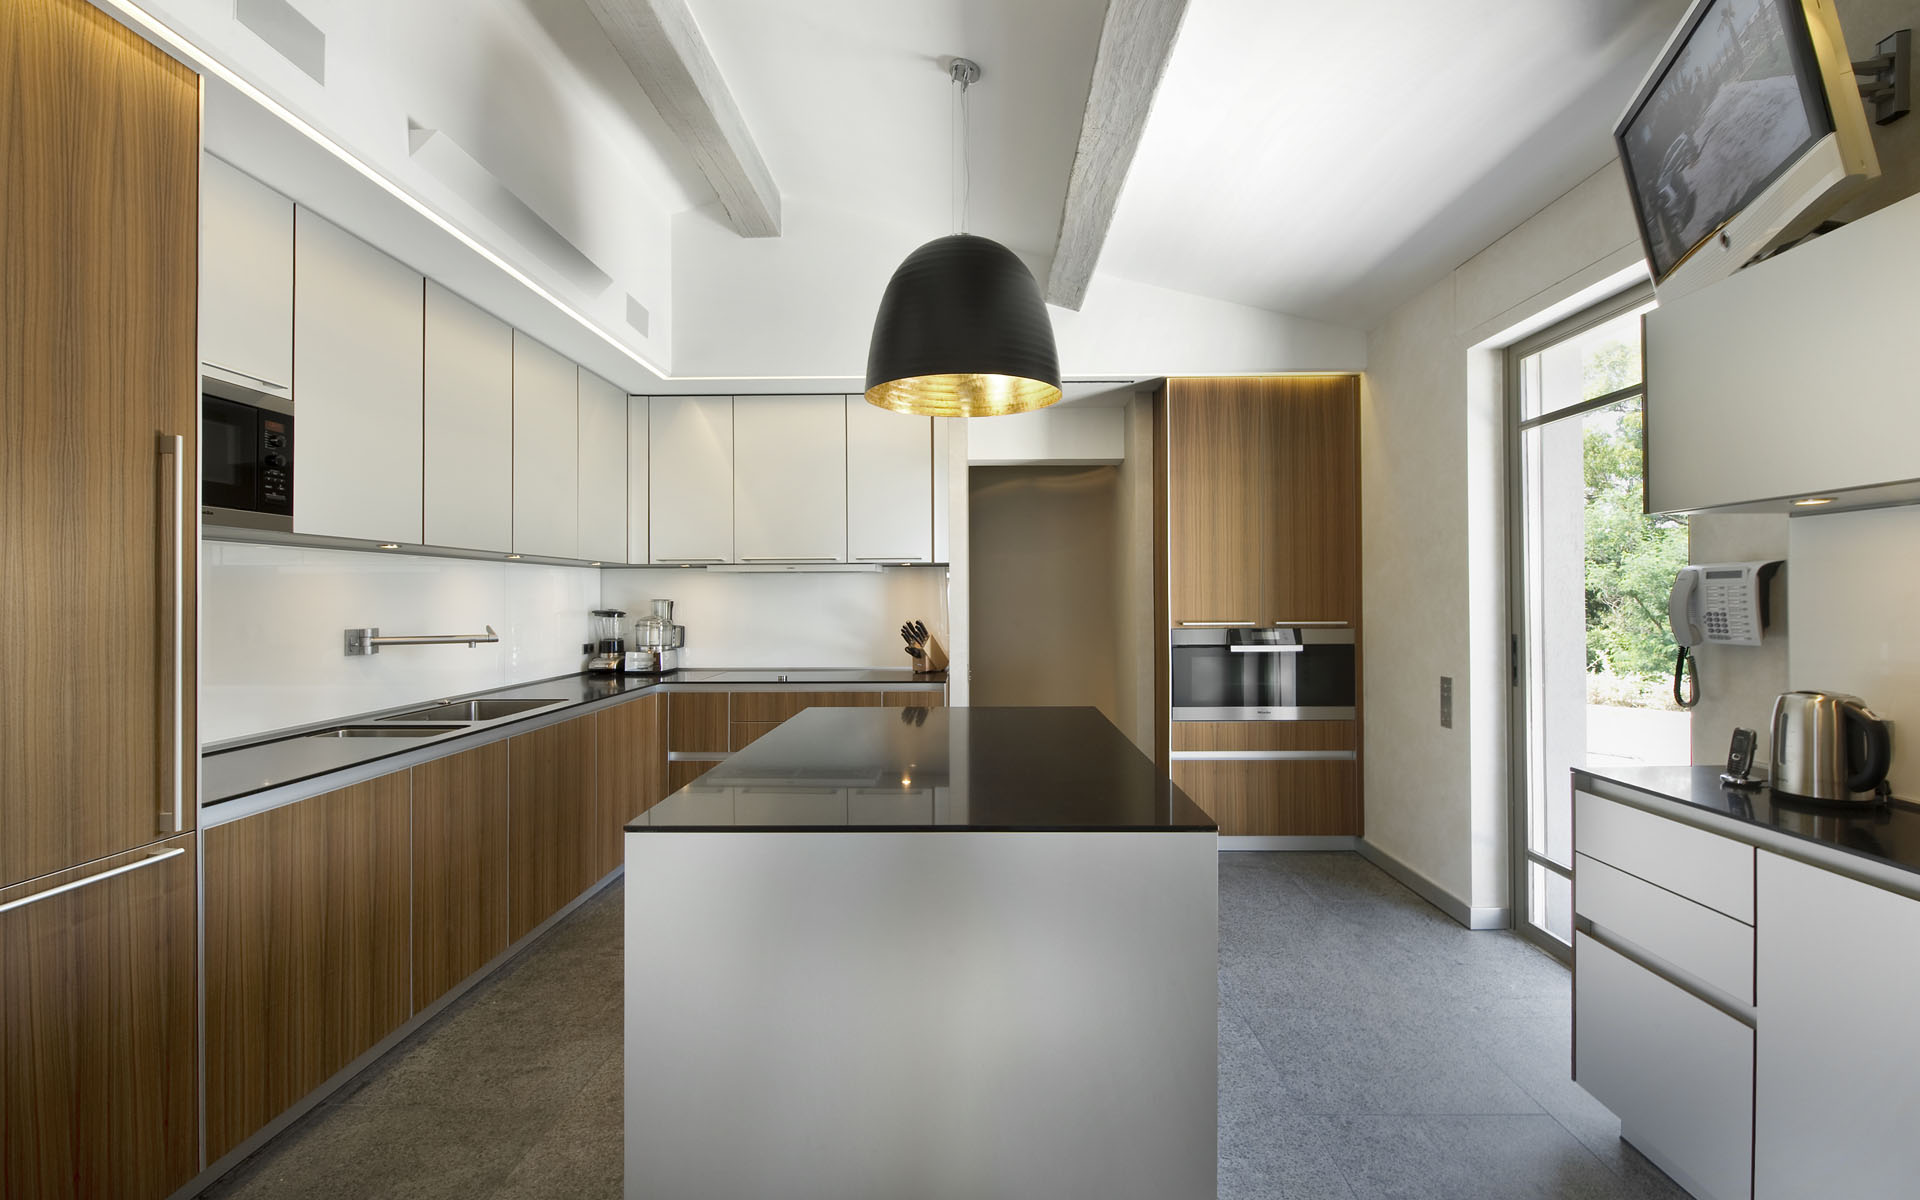 Minimalistic Kitchen Interior photo - 1